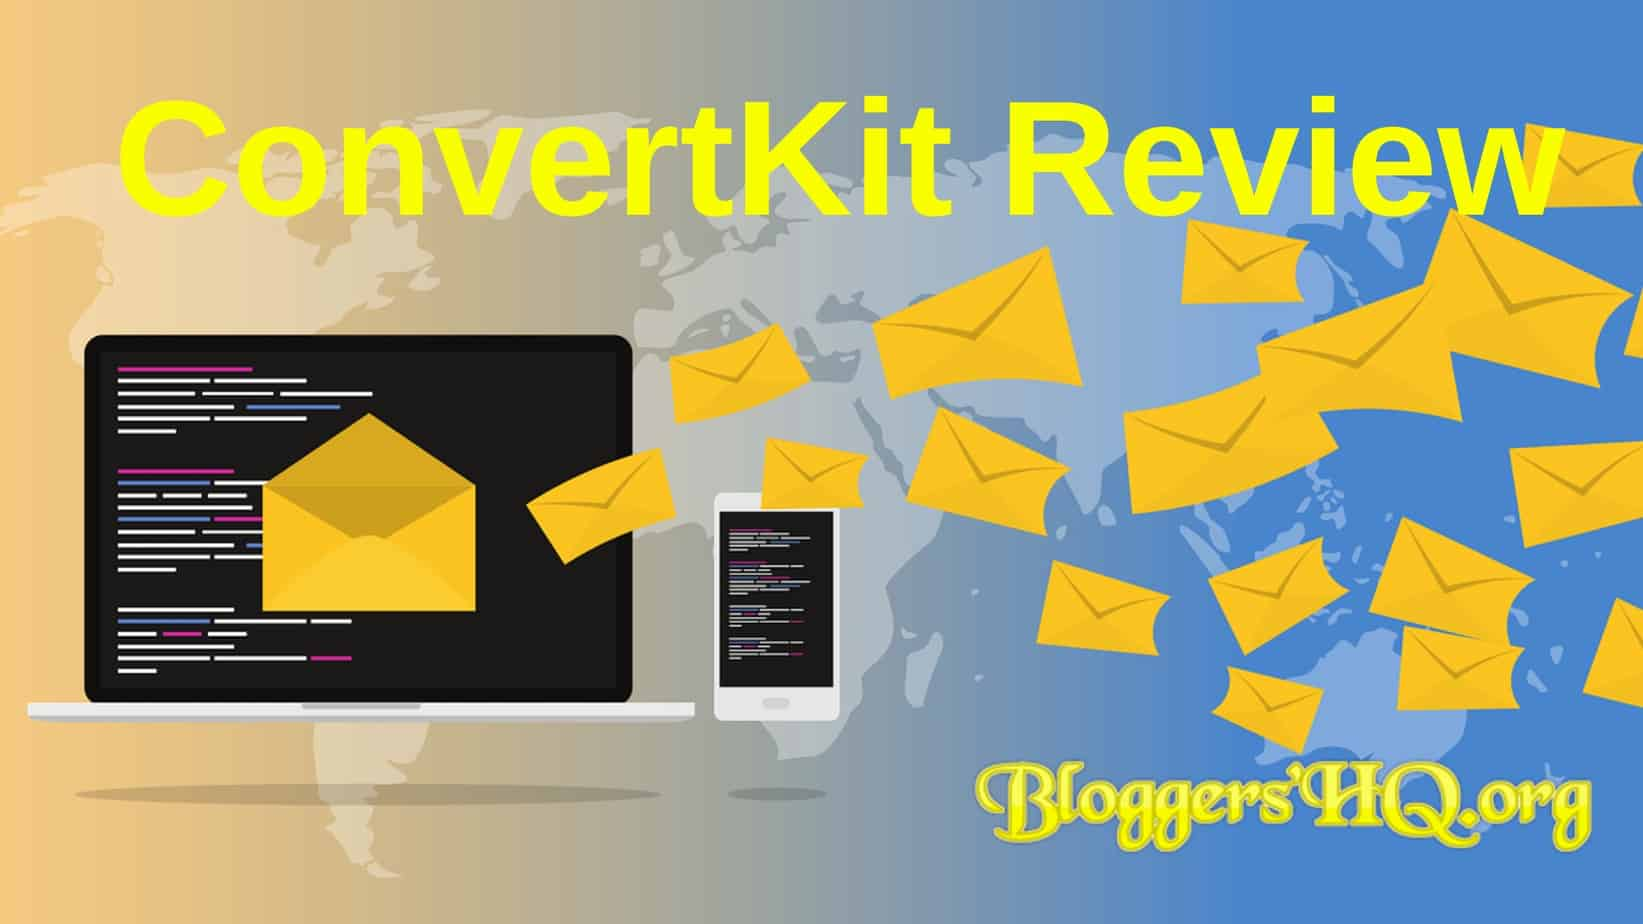 Convertkit Long Form